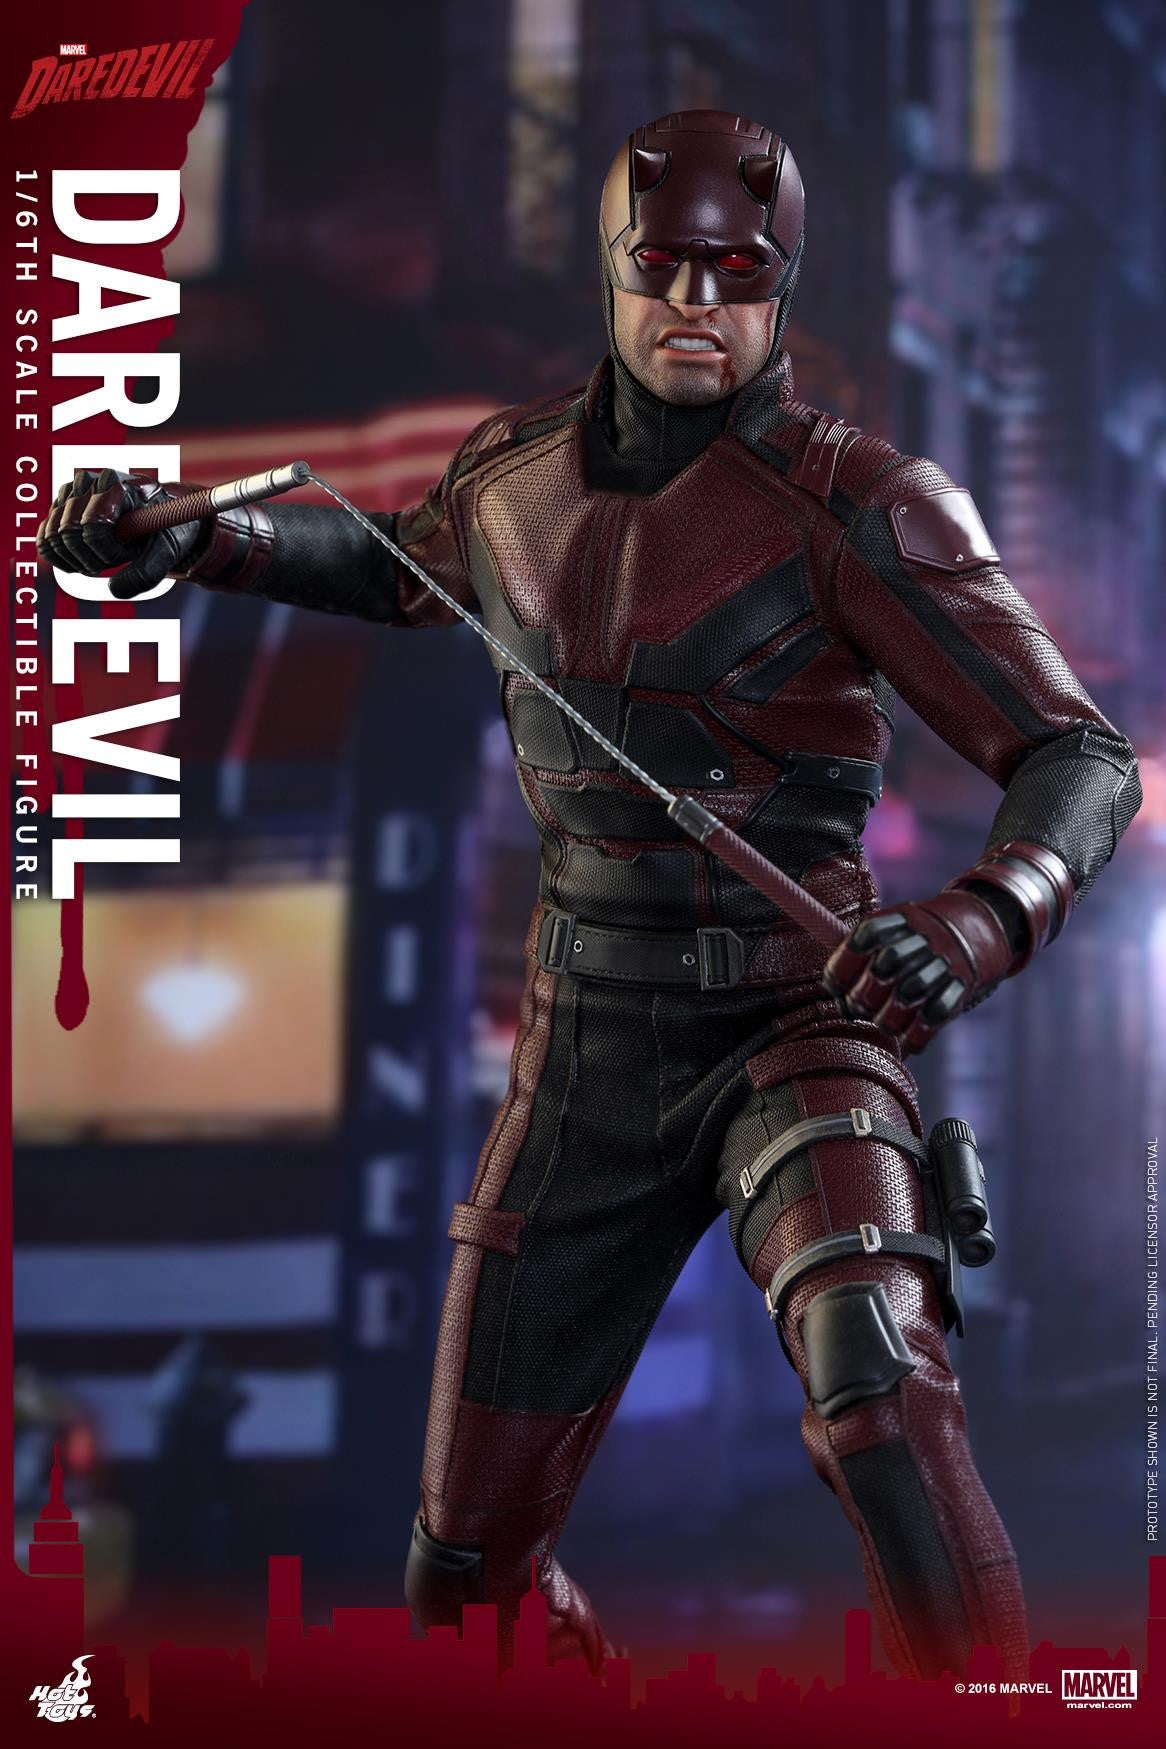 Hot Toys - TMS003 - Marvel's Daredevil - Daredevil - Marvelous Toys - 6